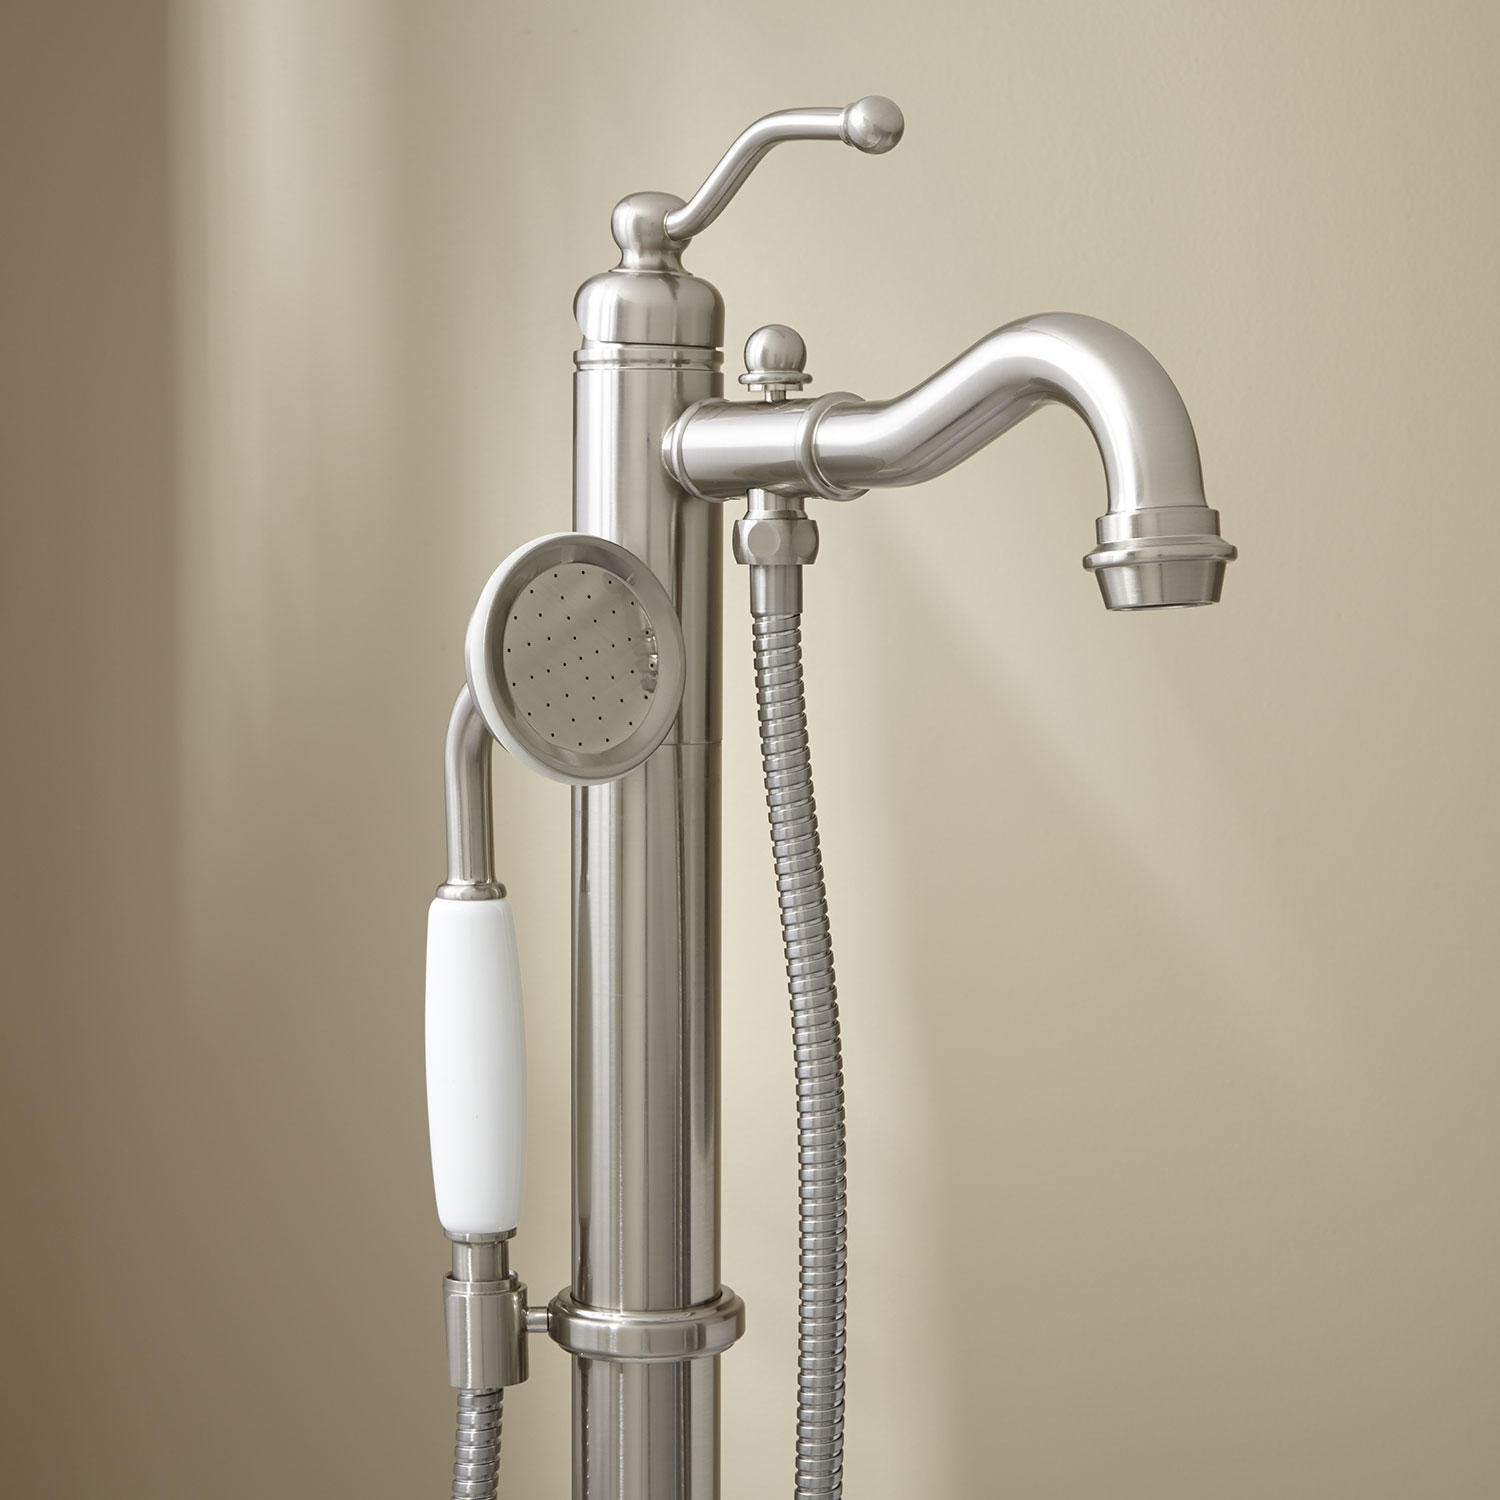 Ideas, leta freestanding tub faucet with hand shower bathroom for size 1500 x 1500  .